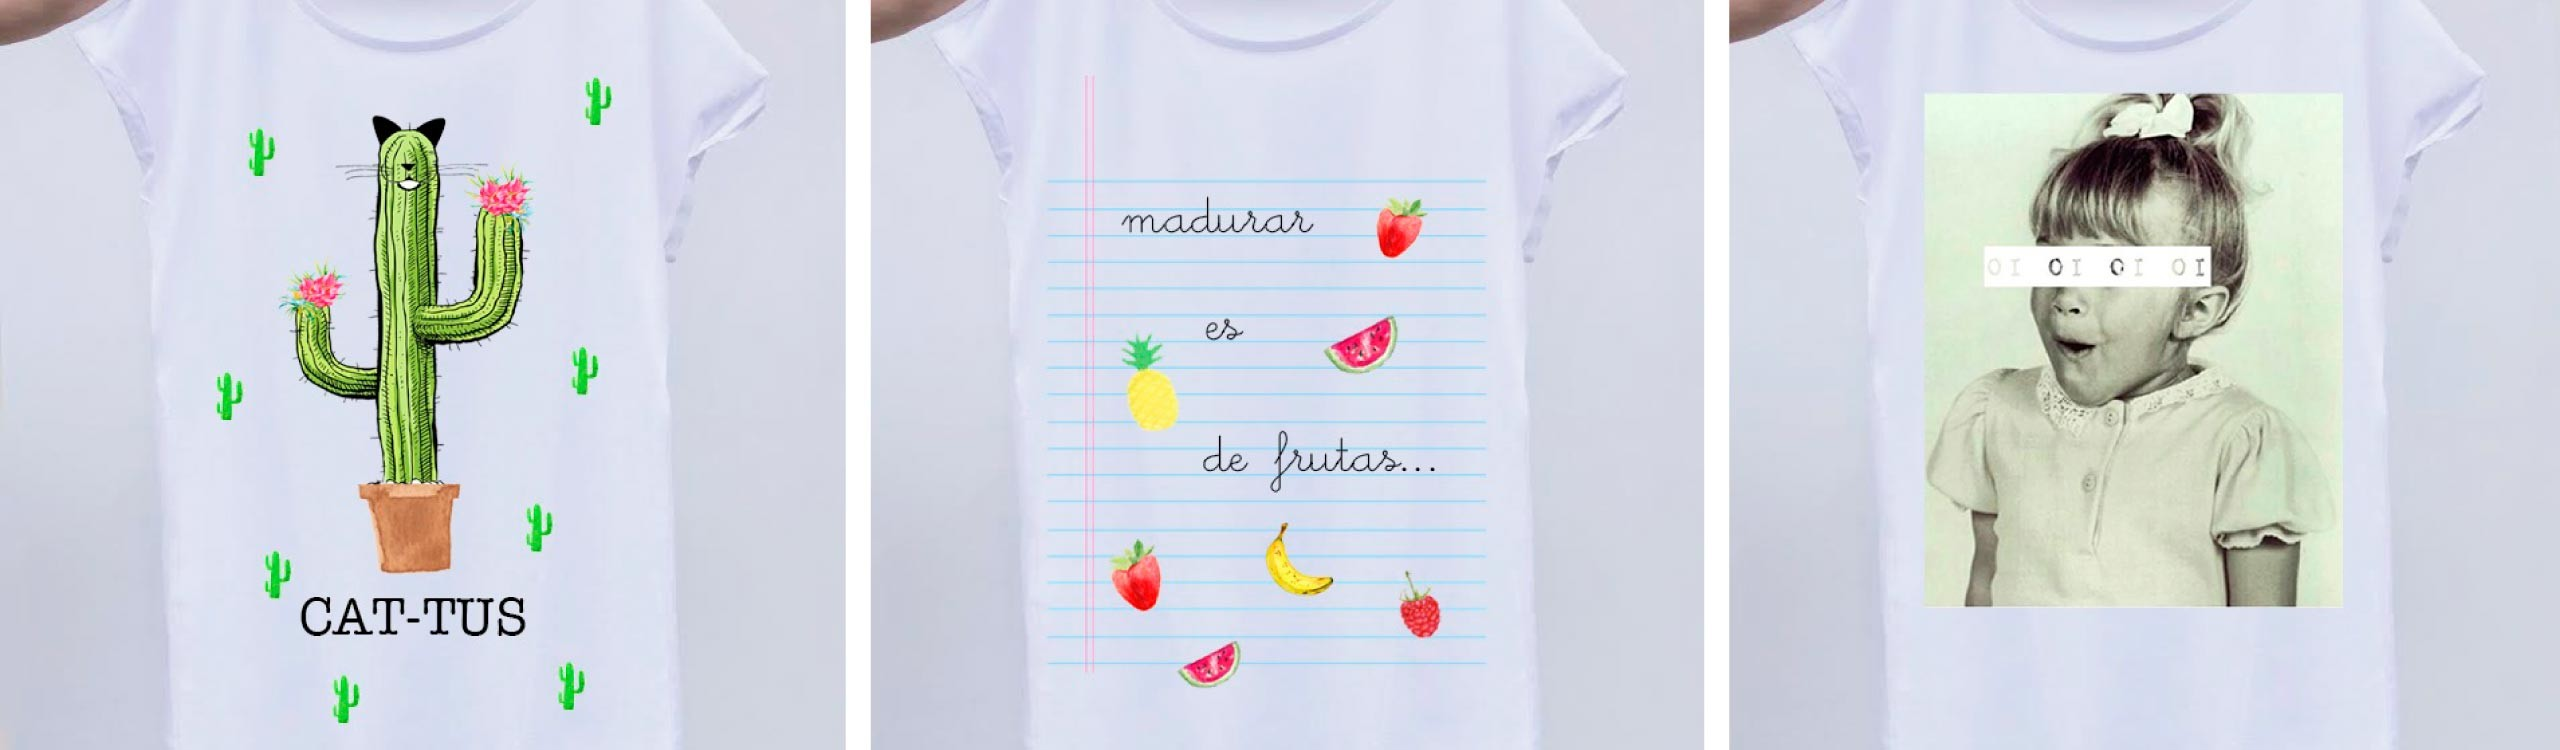 camisetas-offset-collage-mis-gafas-de-pasta-destacado